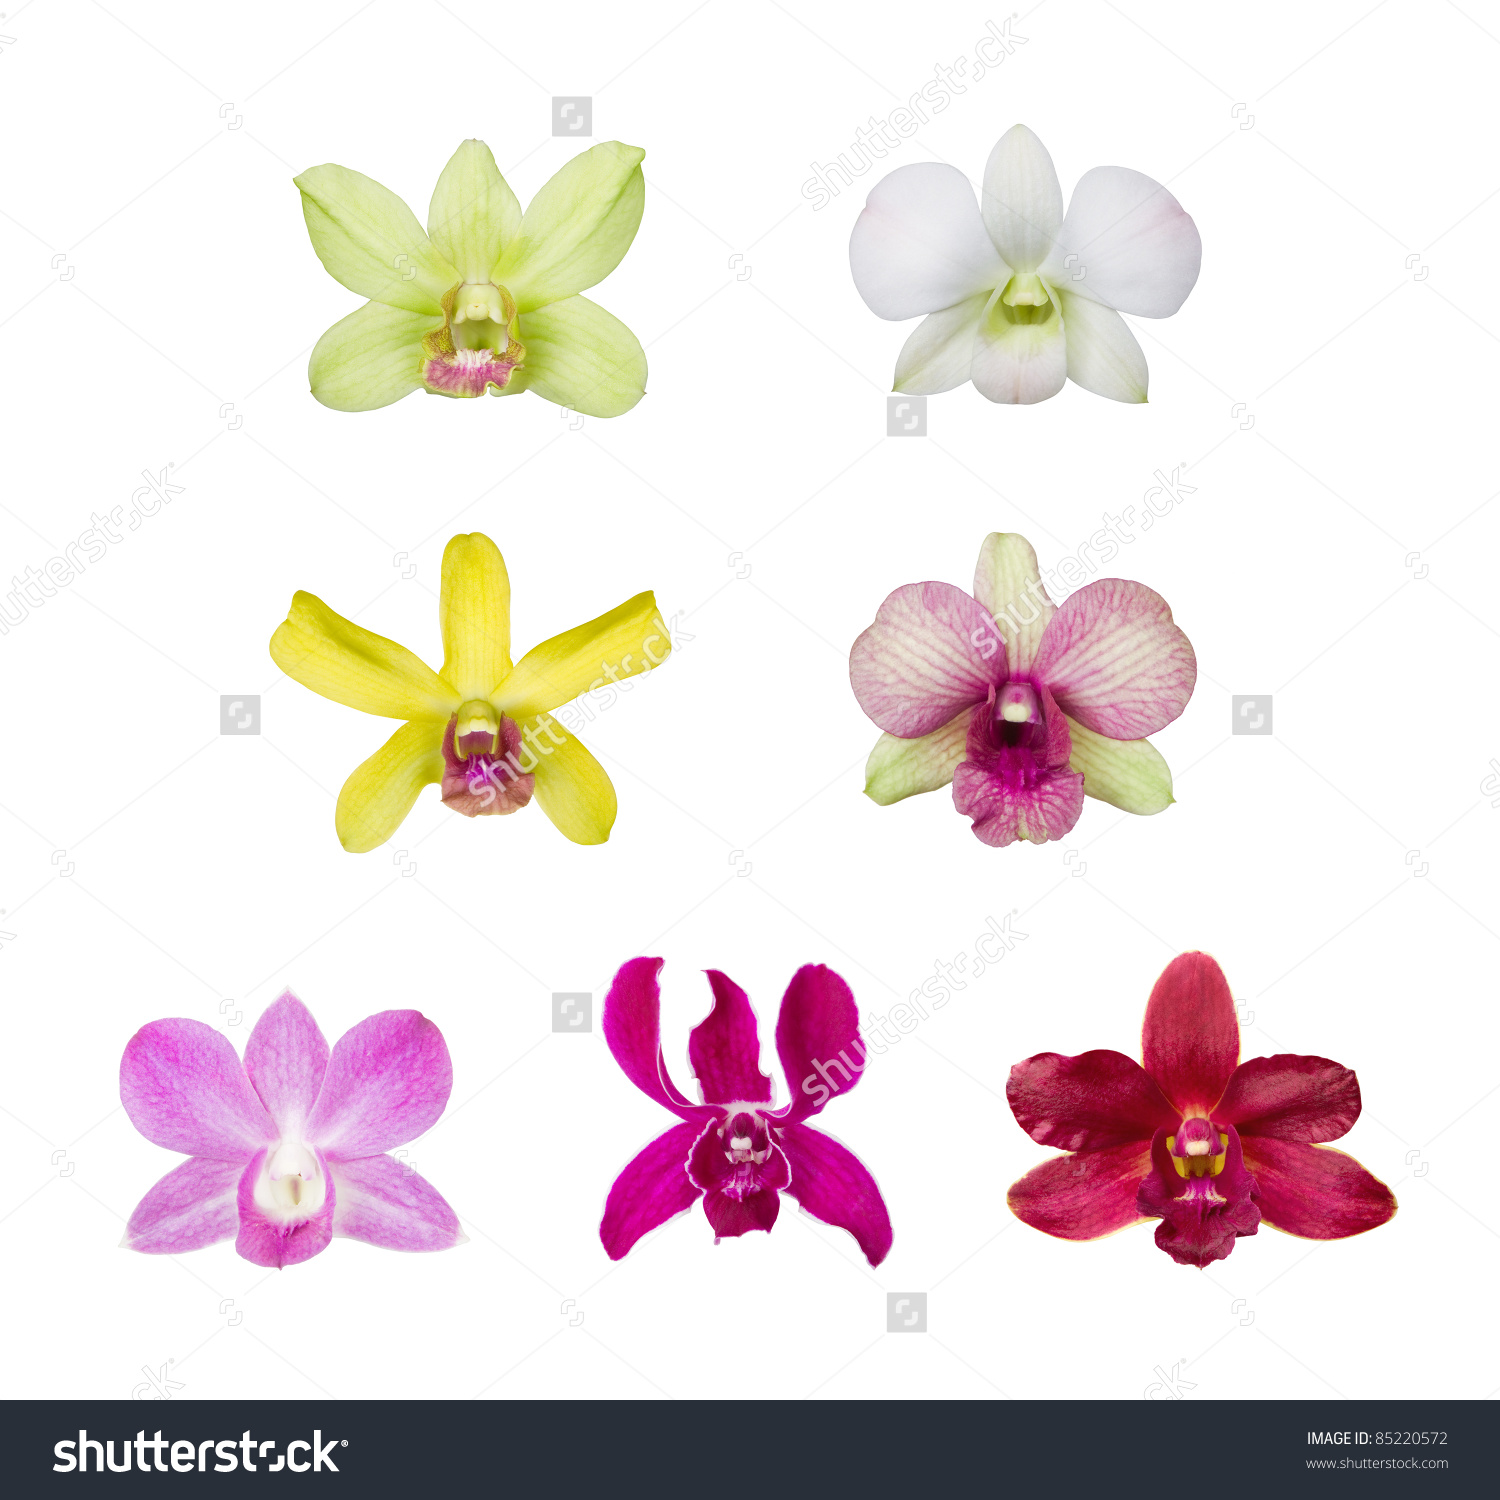 Orchid Flower Blossom Collection Isolated On White Background.